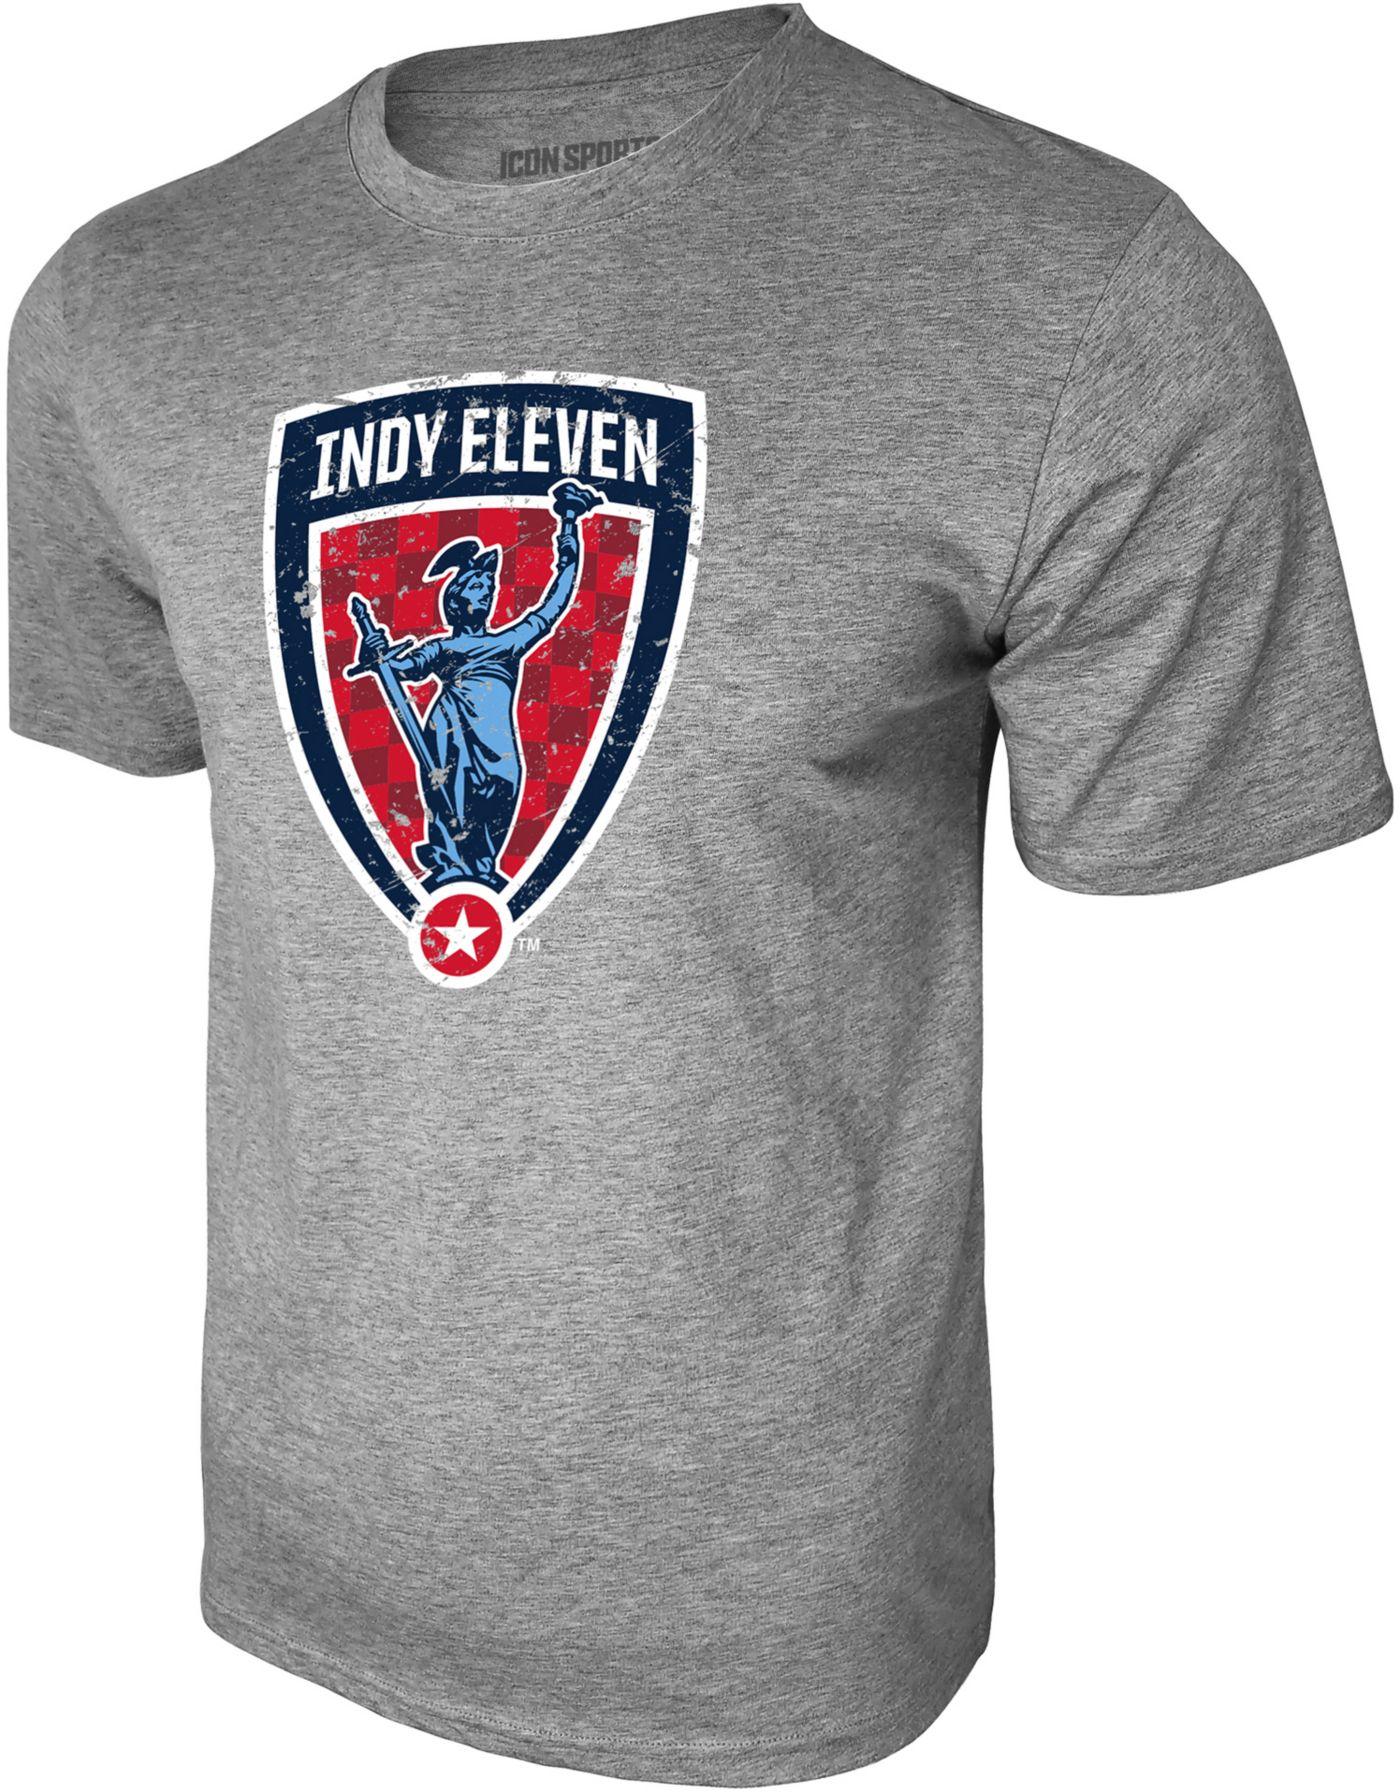 Icon Sports Group Men's Indy Eleven Logo Heather Grey T-Shirt